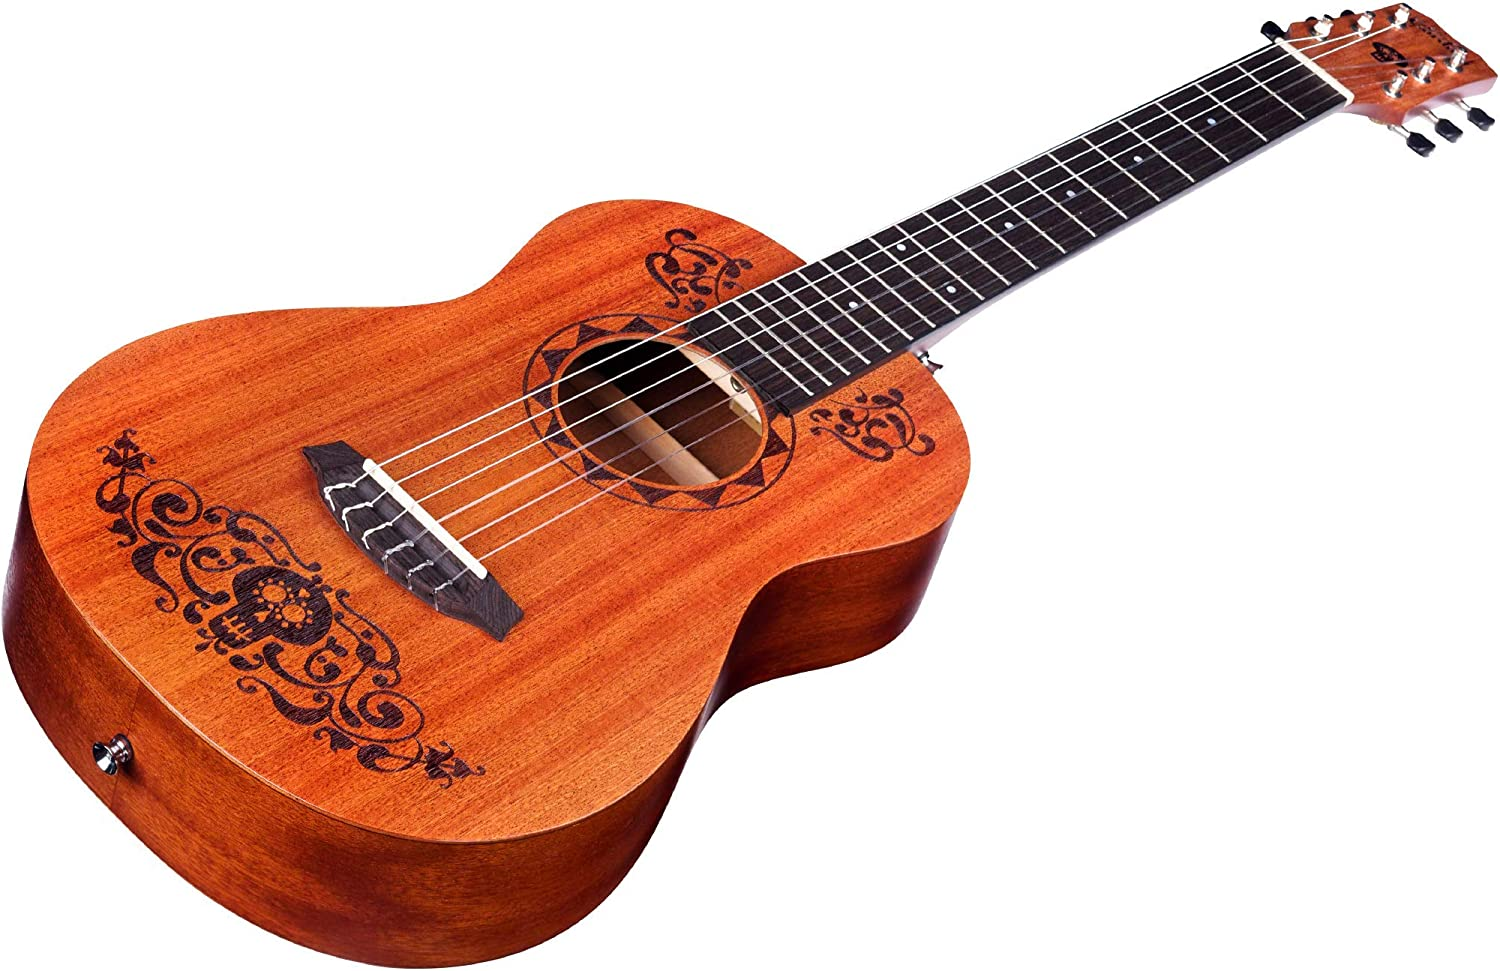 Cordoba Guitars Coco Mini MH/MH W/B - Mini classical guitar ...